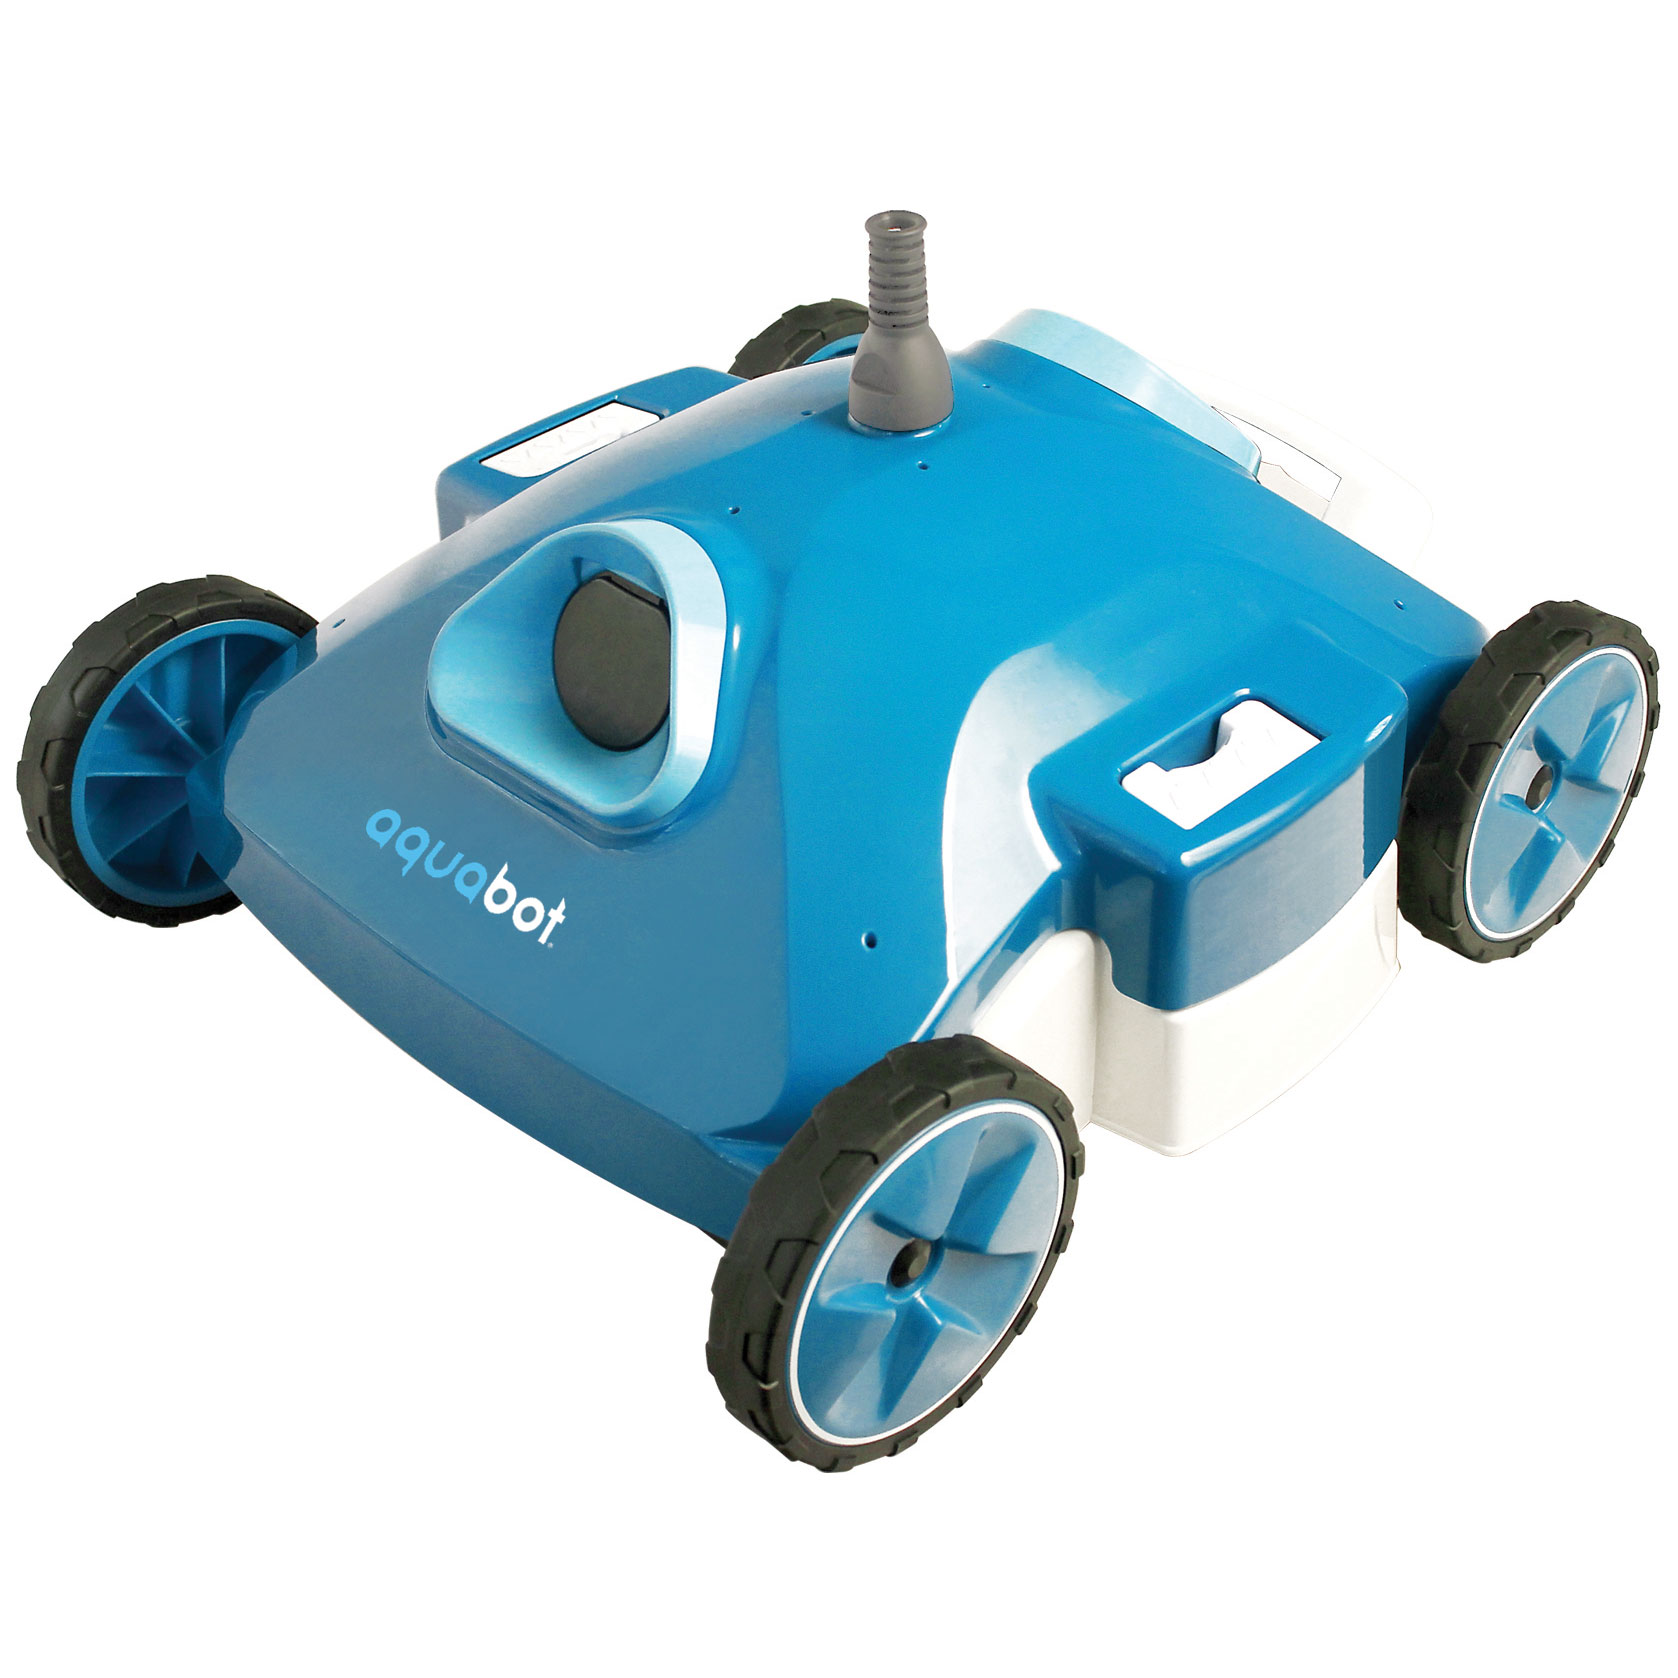 Aquabot Pool Rover S2 40 Ajet121 Above Ground Robotic Auto